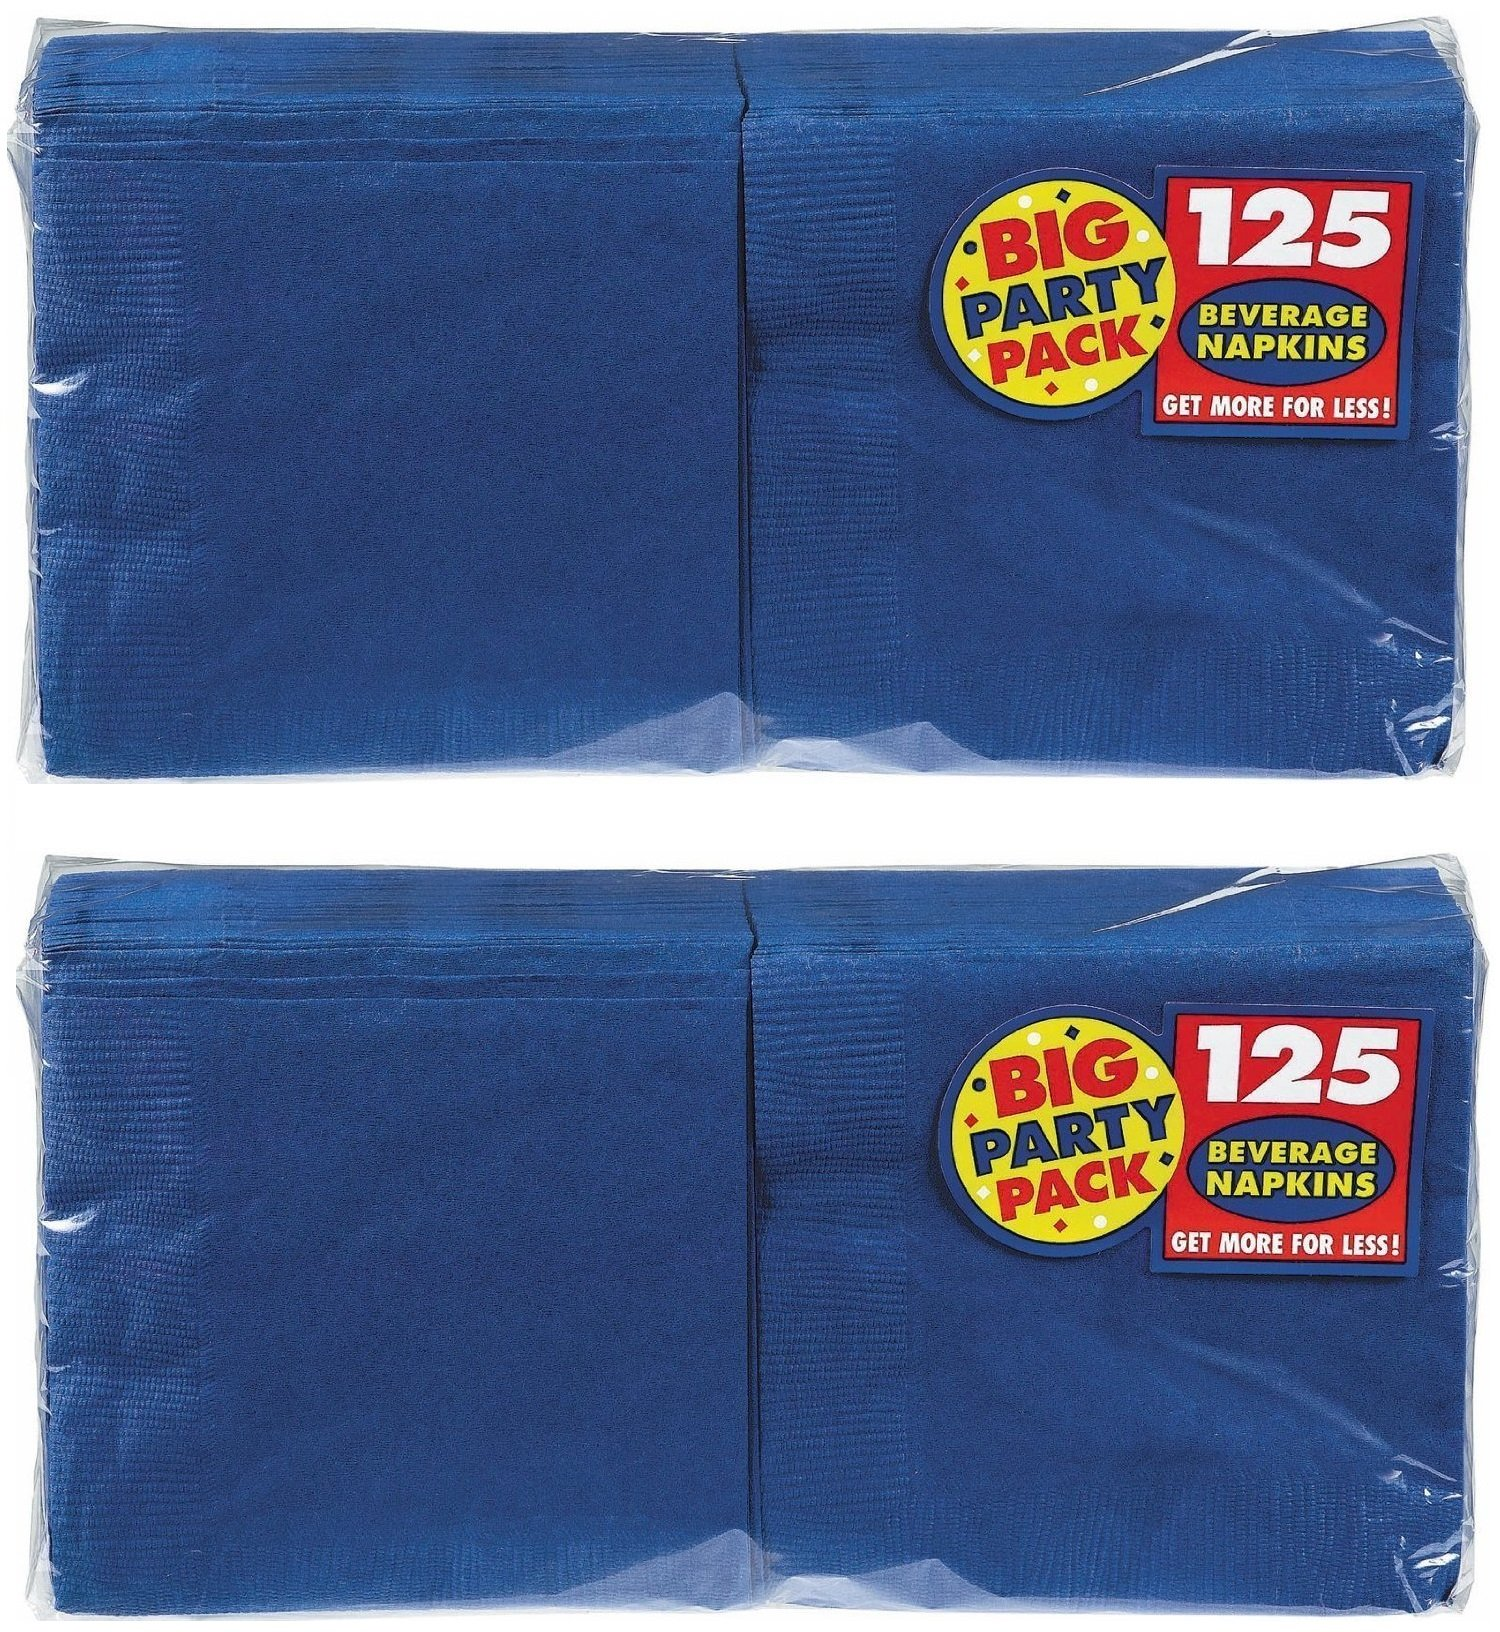 Big Party Pack Beverage Napkins 5-Inch, 125/Pkg, Bright Royal Blue (2 PACK)